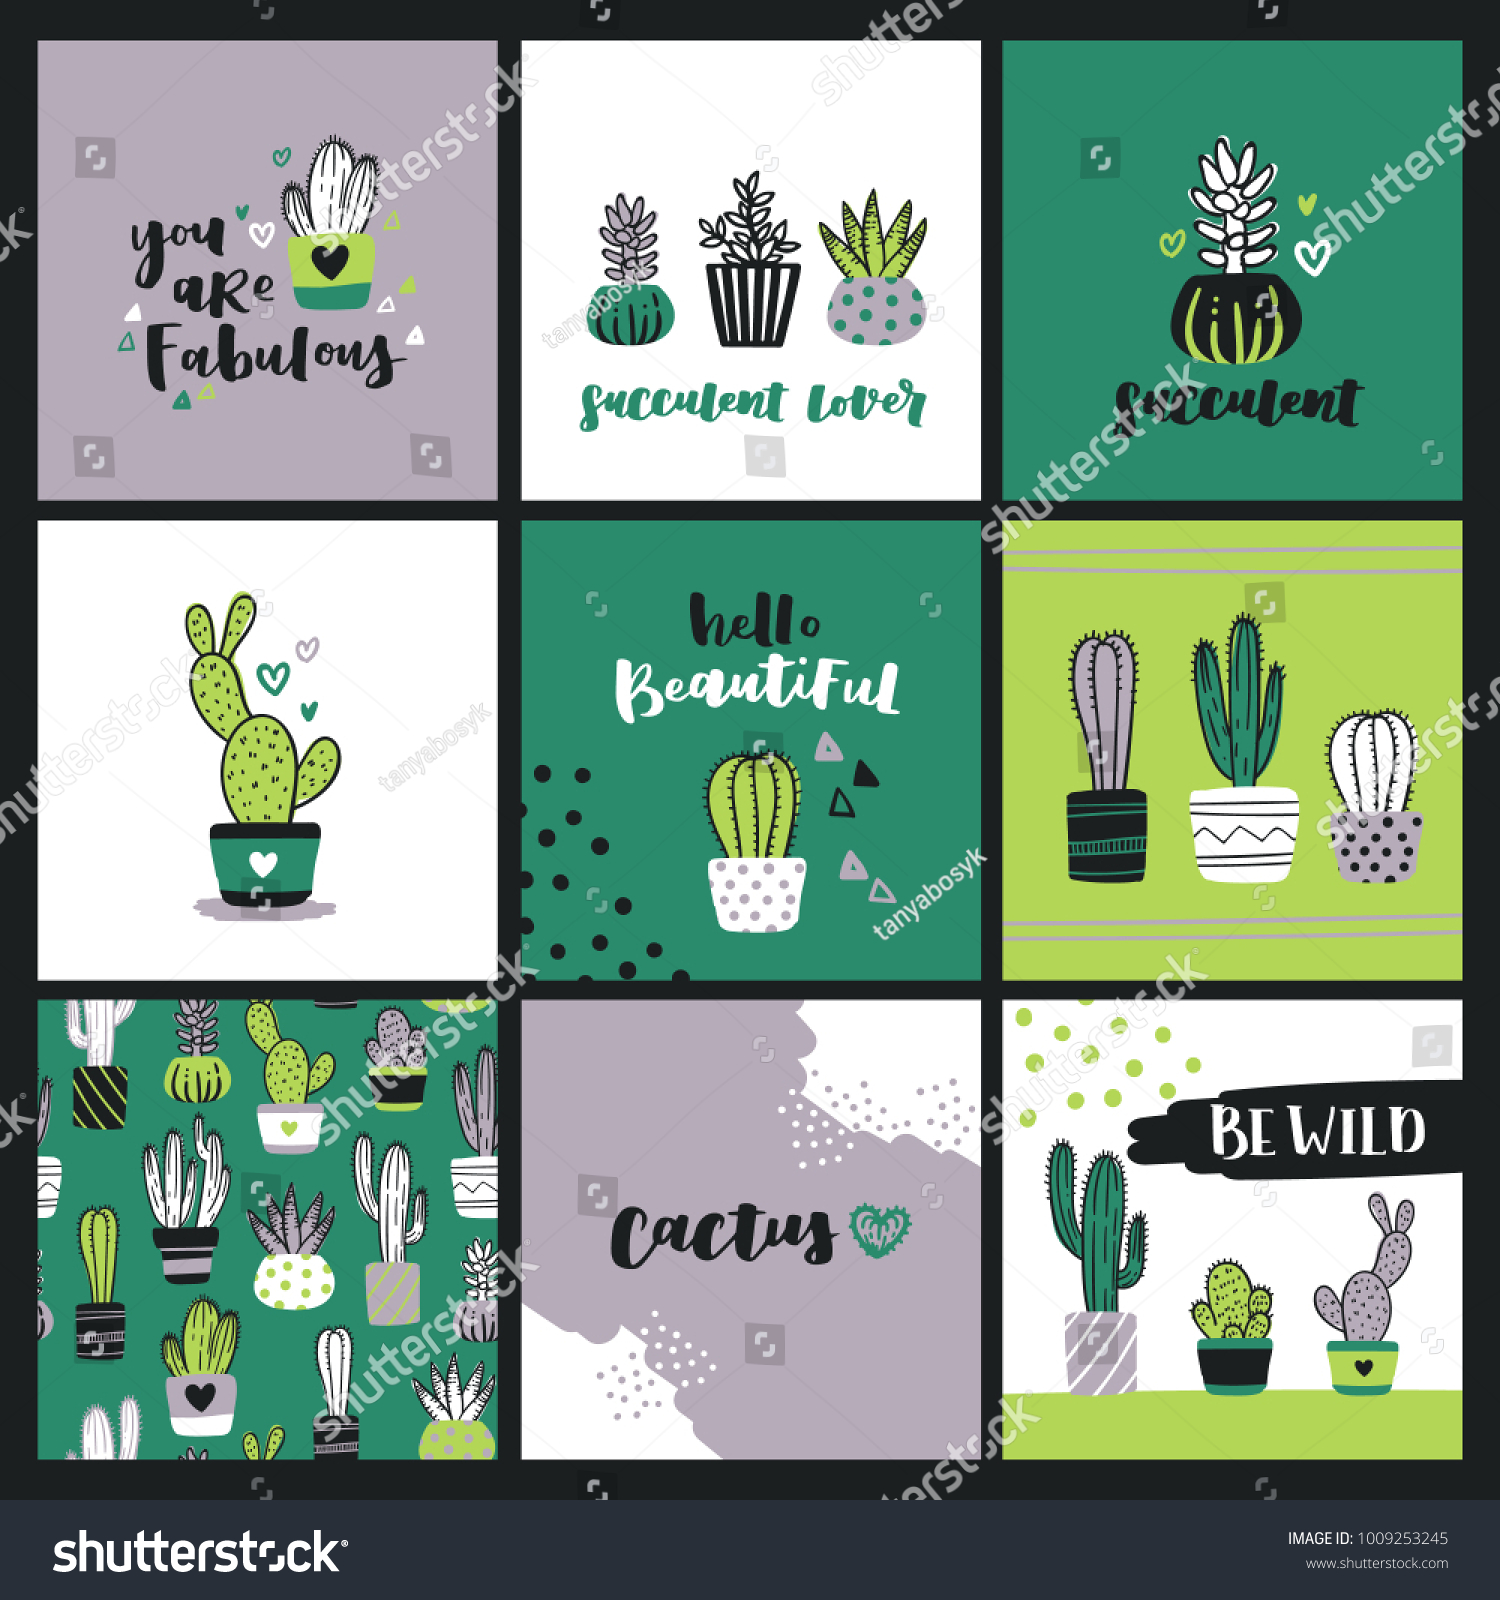 Set cute cactus lover greeting cards stock vector 1009253245 set cute cactus lover greeting cards stock vector 1009253245 shutterstock m4hsunfo